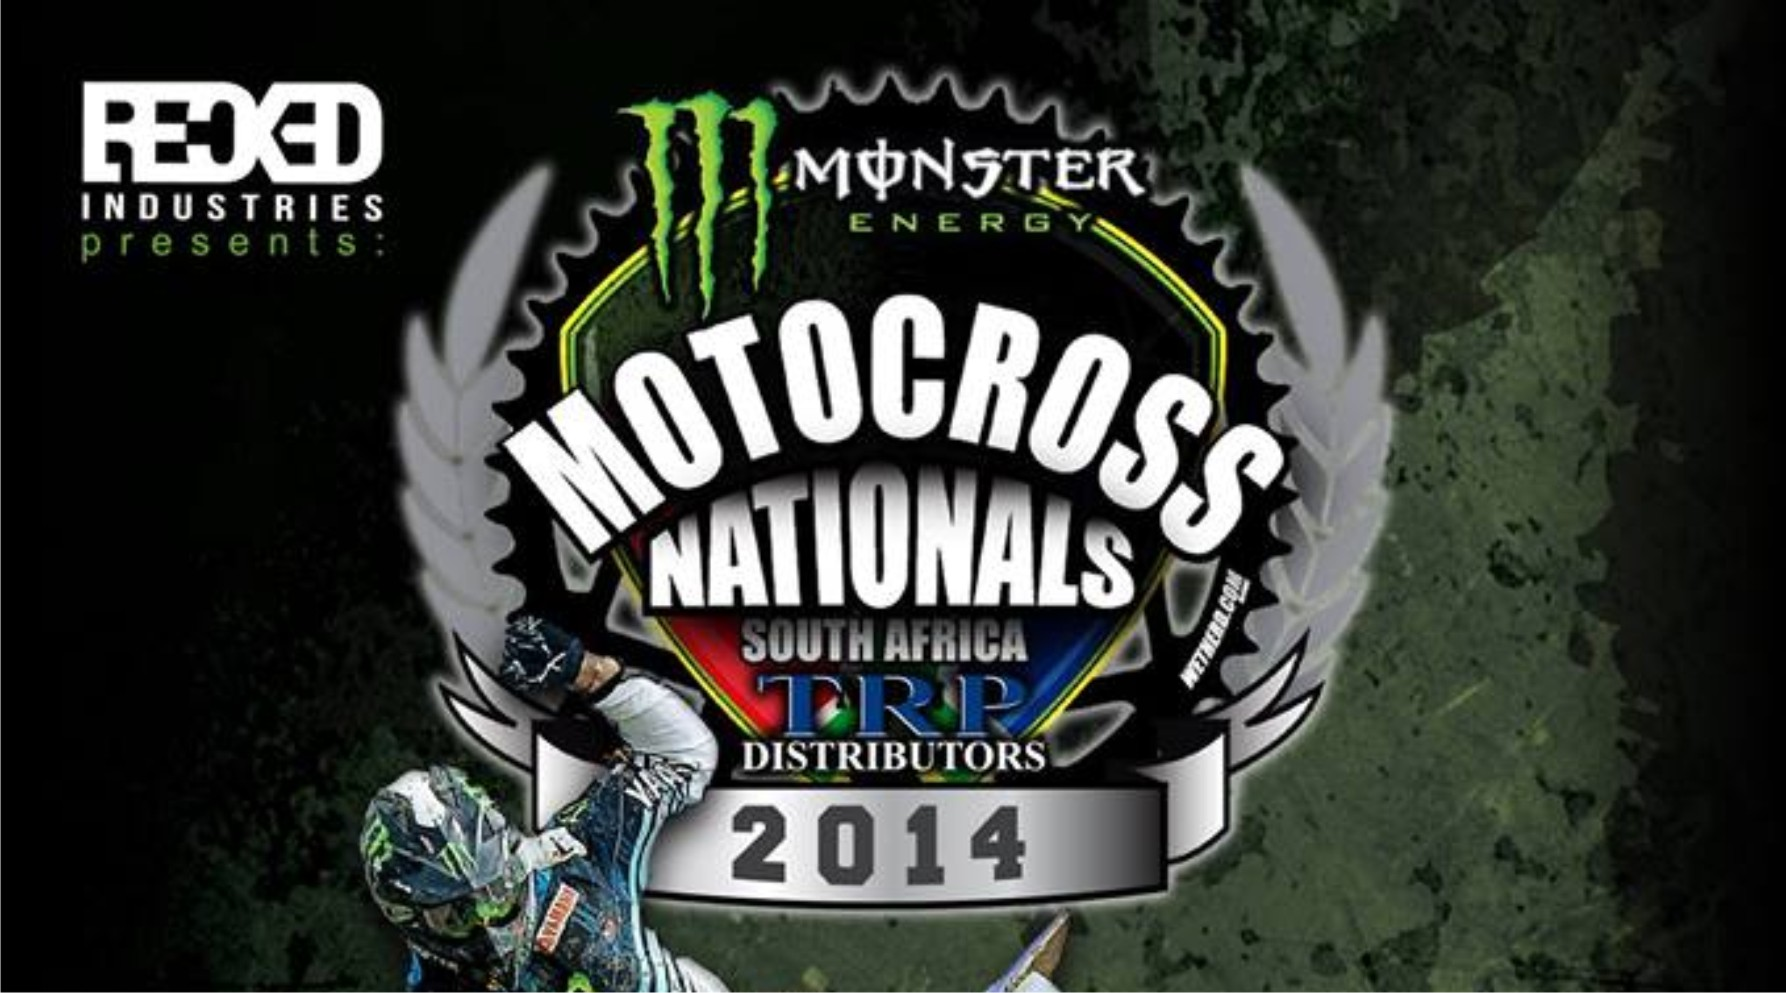 The Monster Energy 2014 Motocross Nationals are about to kick off